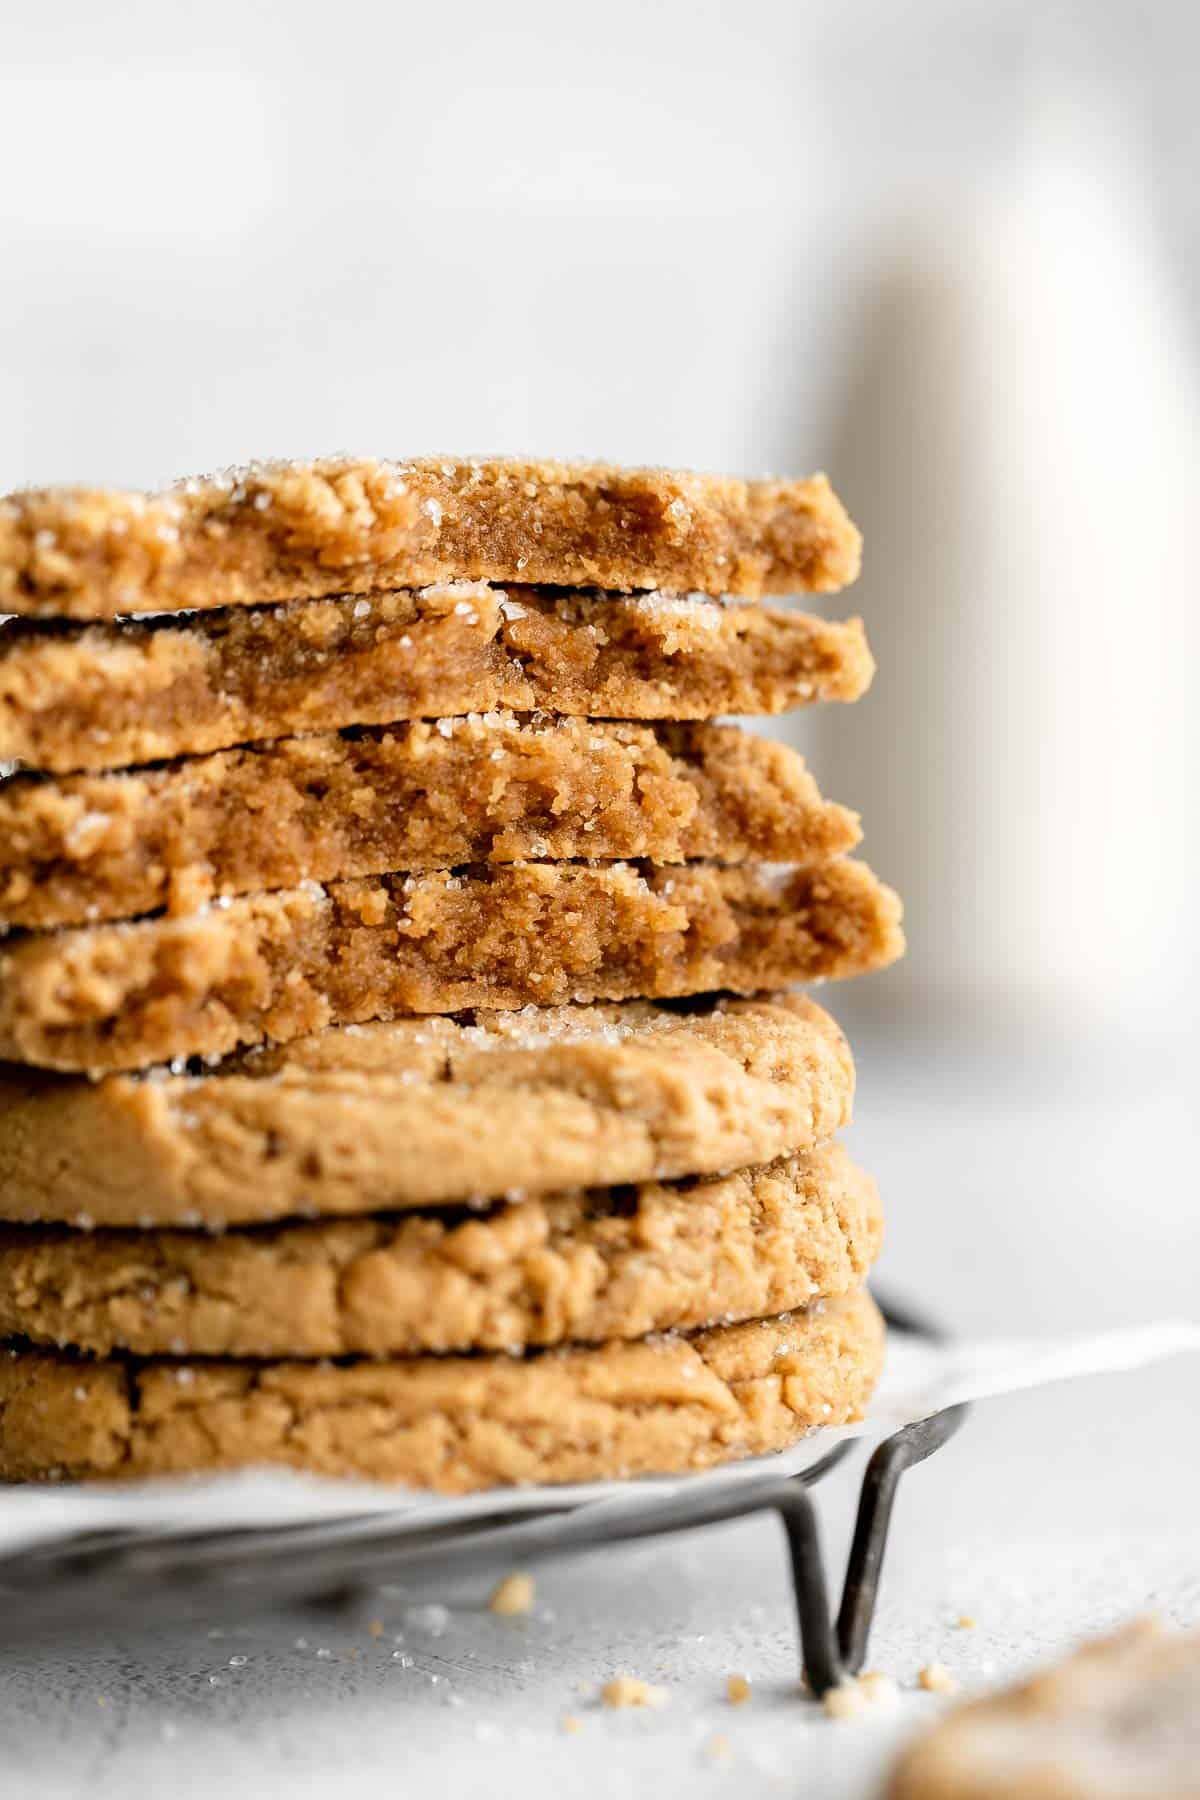 gluten free peanut butter cookies stacked on each other